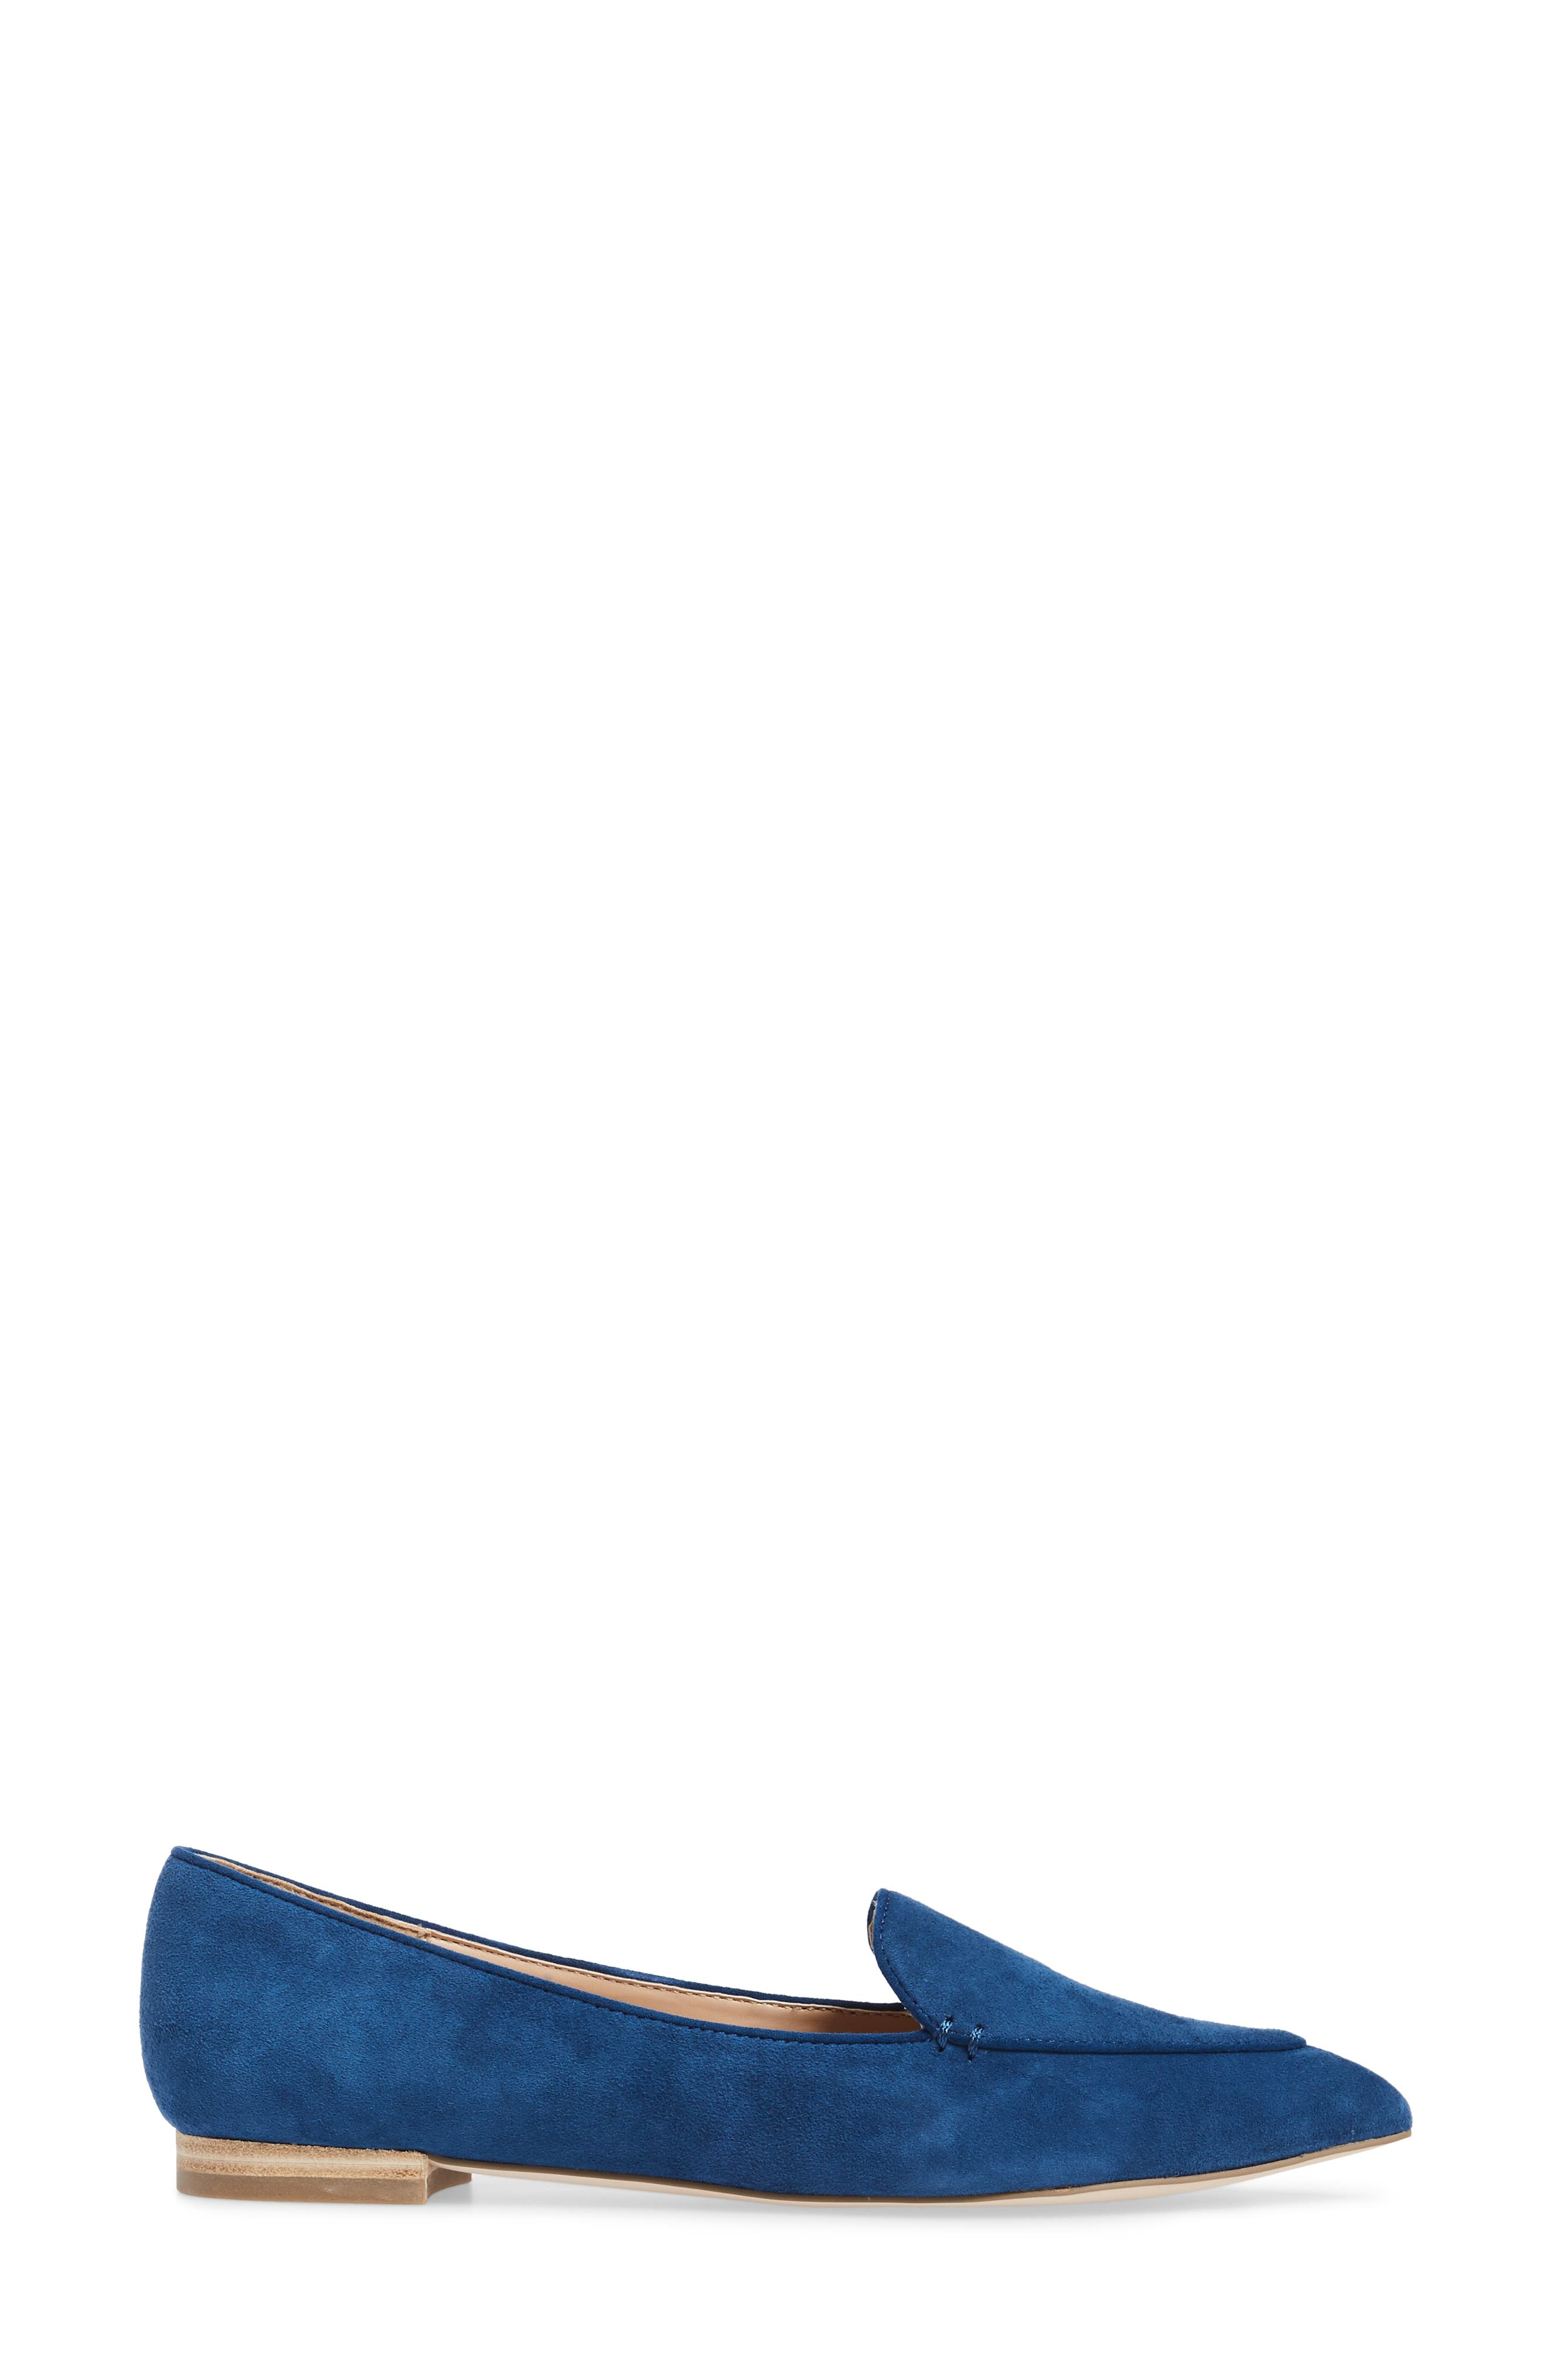 'Cammila' Pointy Toe Loafer,                             Alternate thumbnail 24, color,